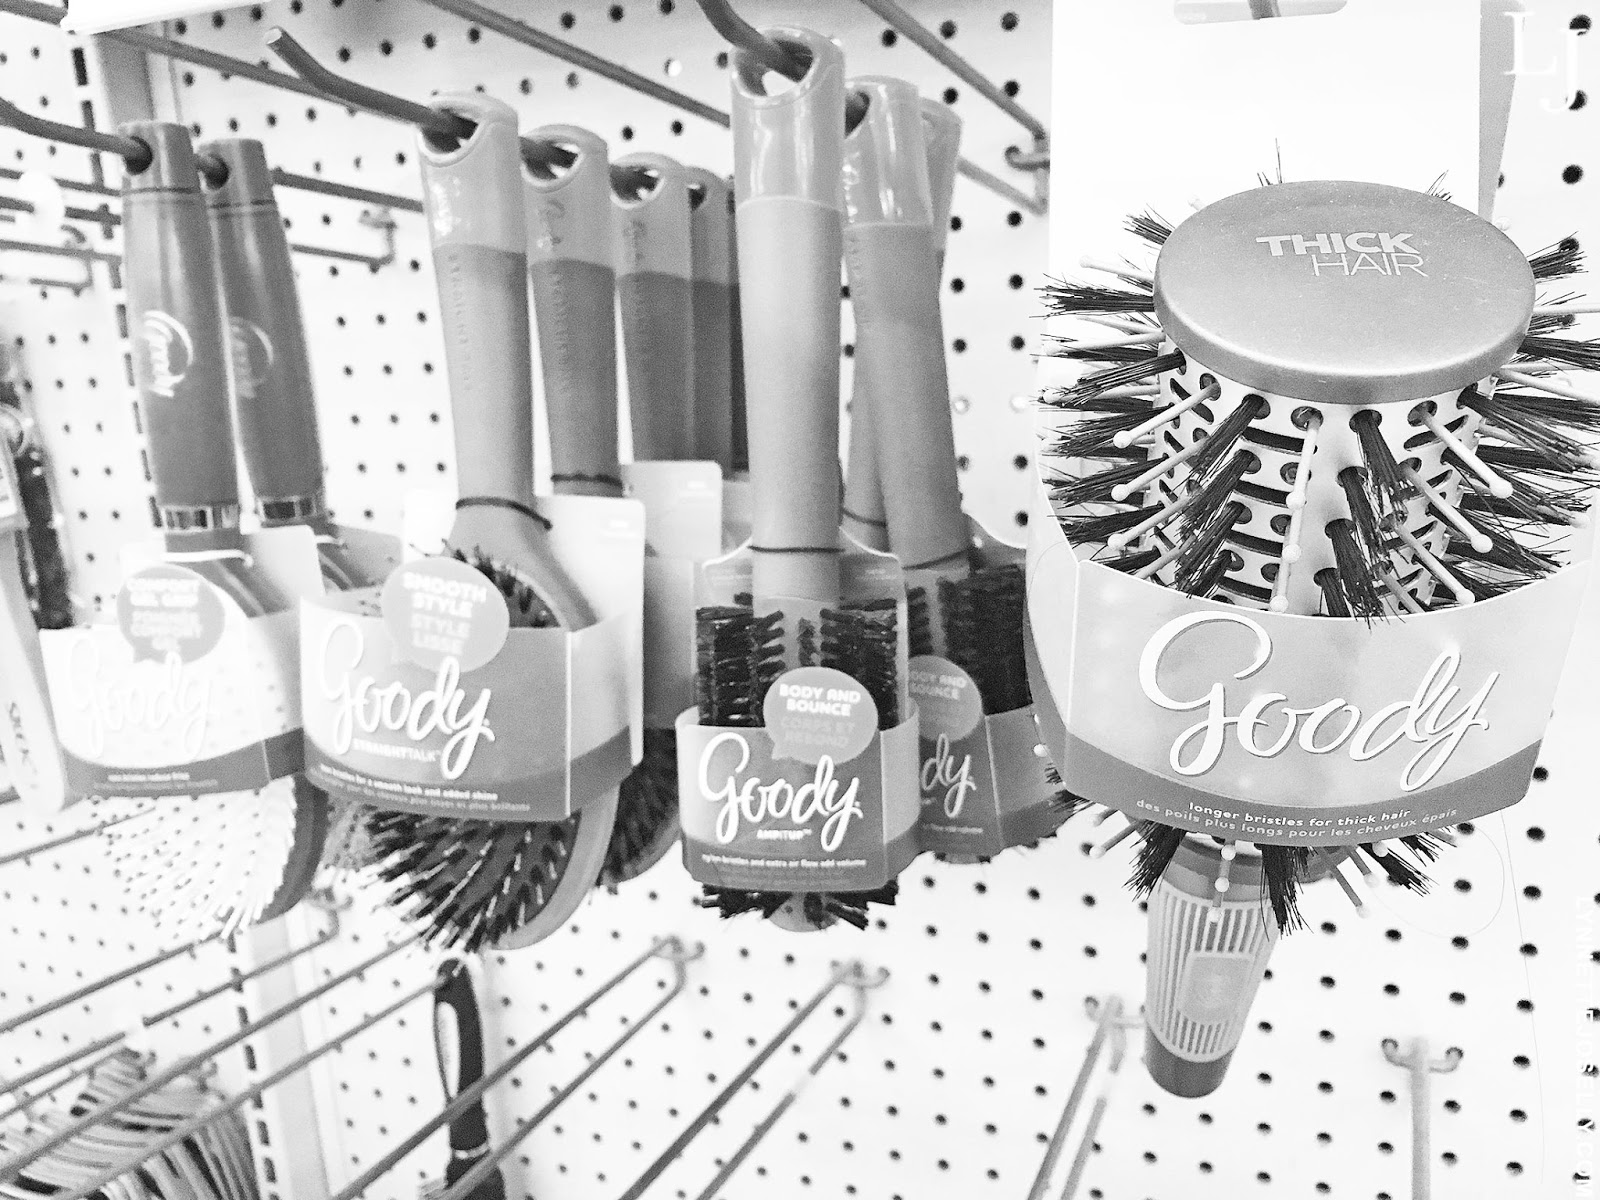 walmart-goody-hair-brushes